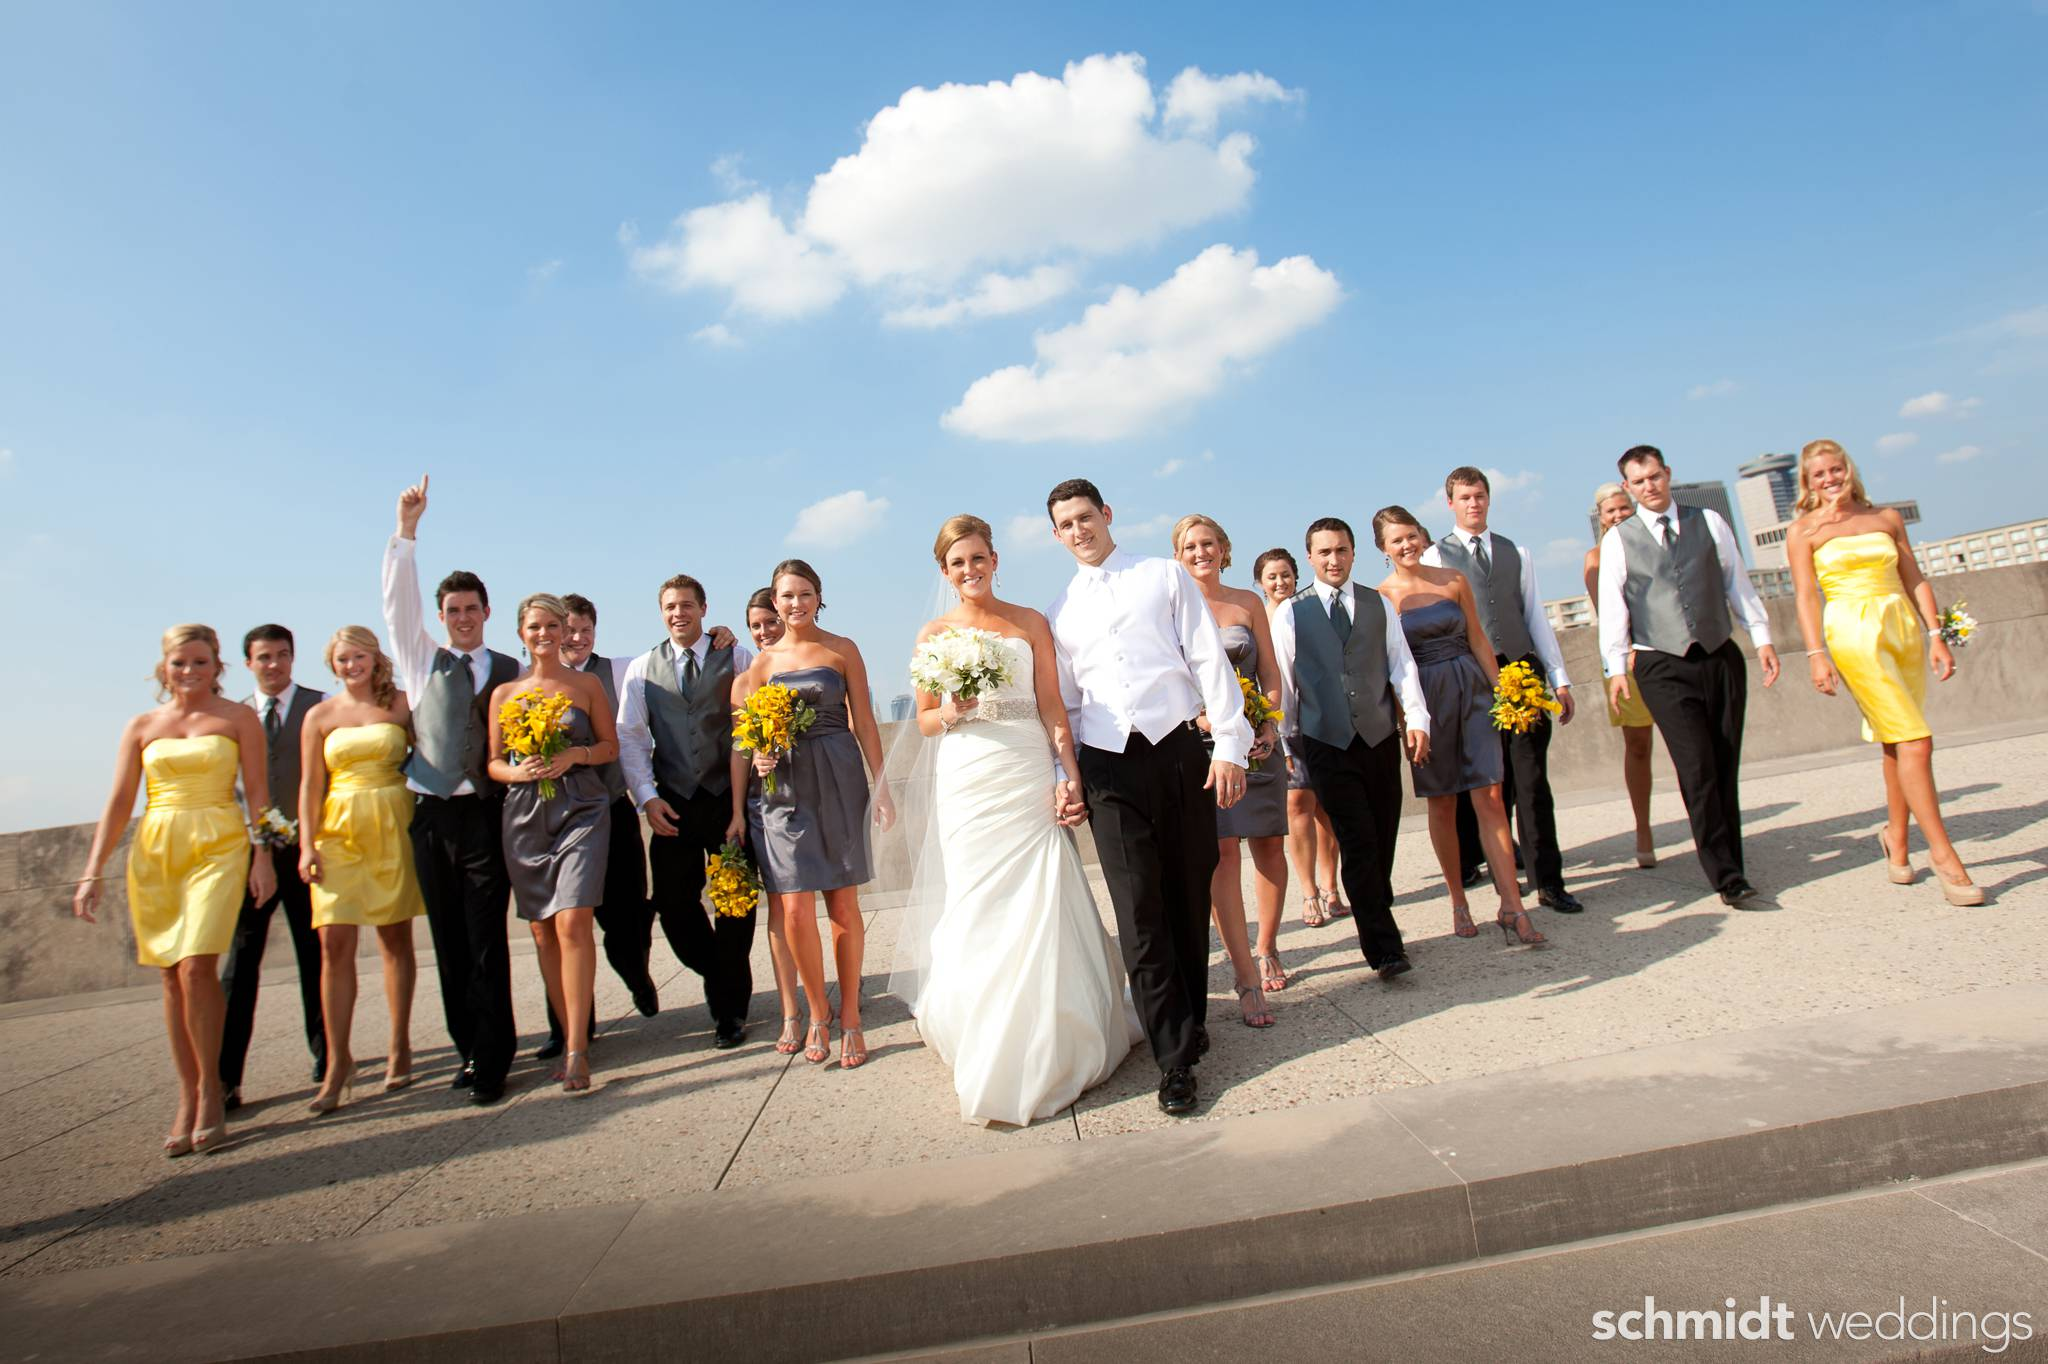 Fun natural expression images from wedding day photo shoot by schmidt photography